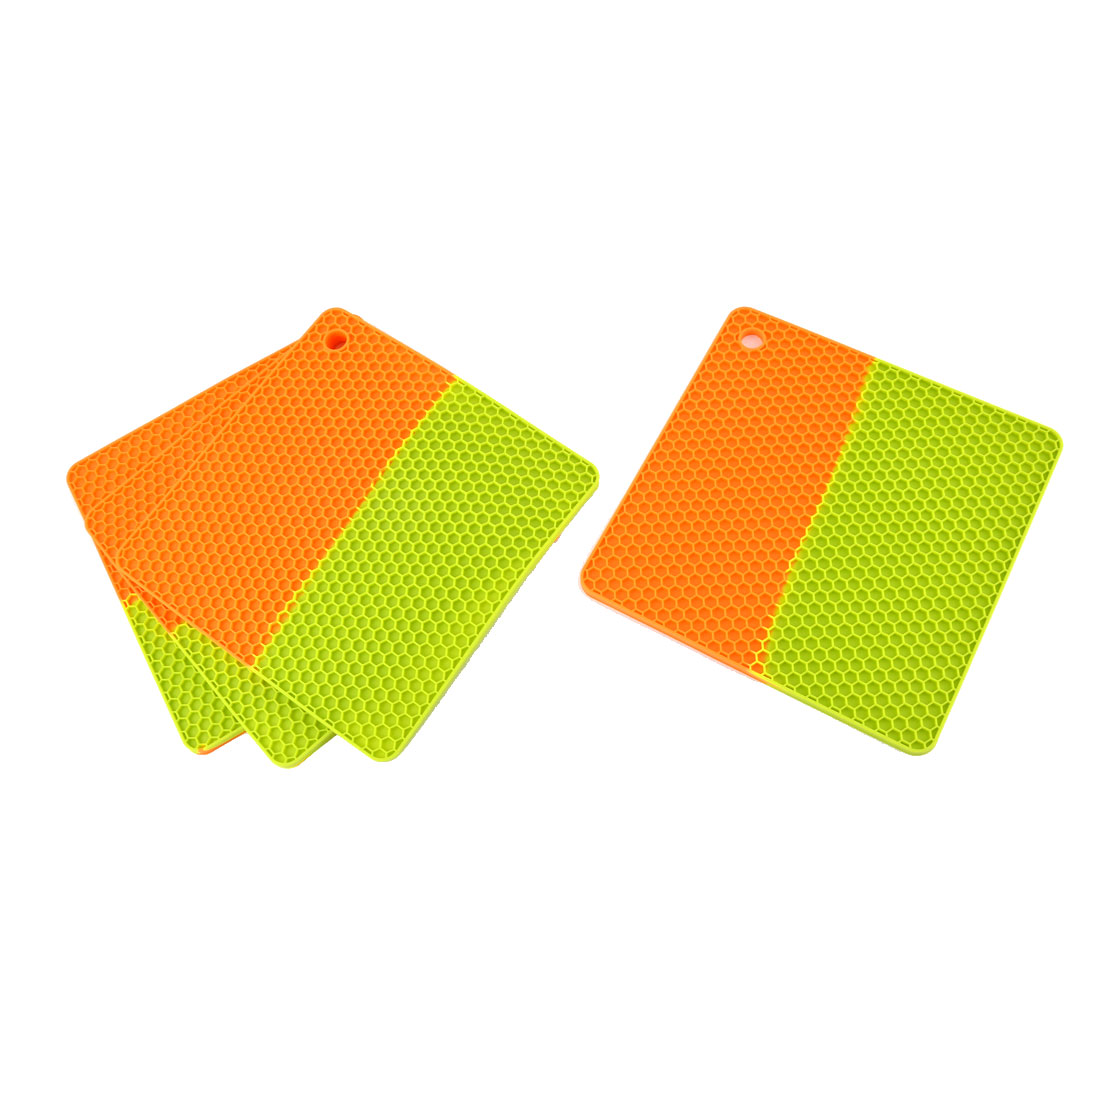 Silicone Square Shaped Honeycomb Pattern Heat Resistant Mat Pad Green Orange 4 Pcs